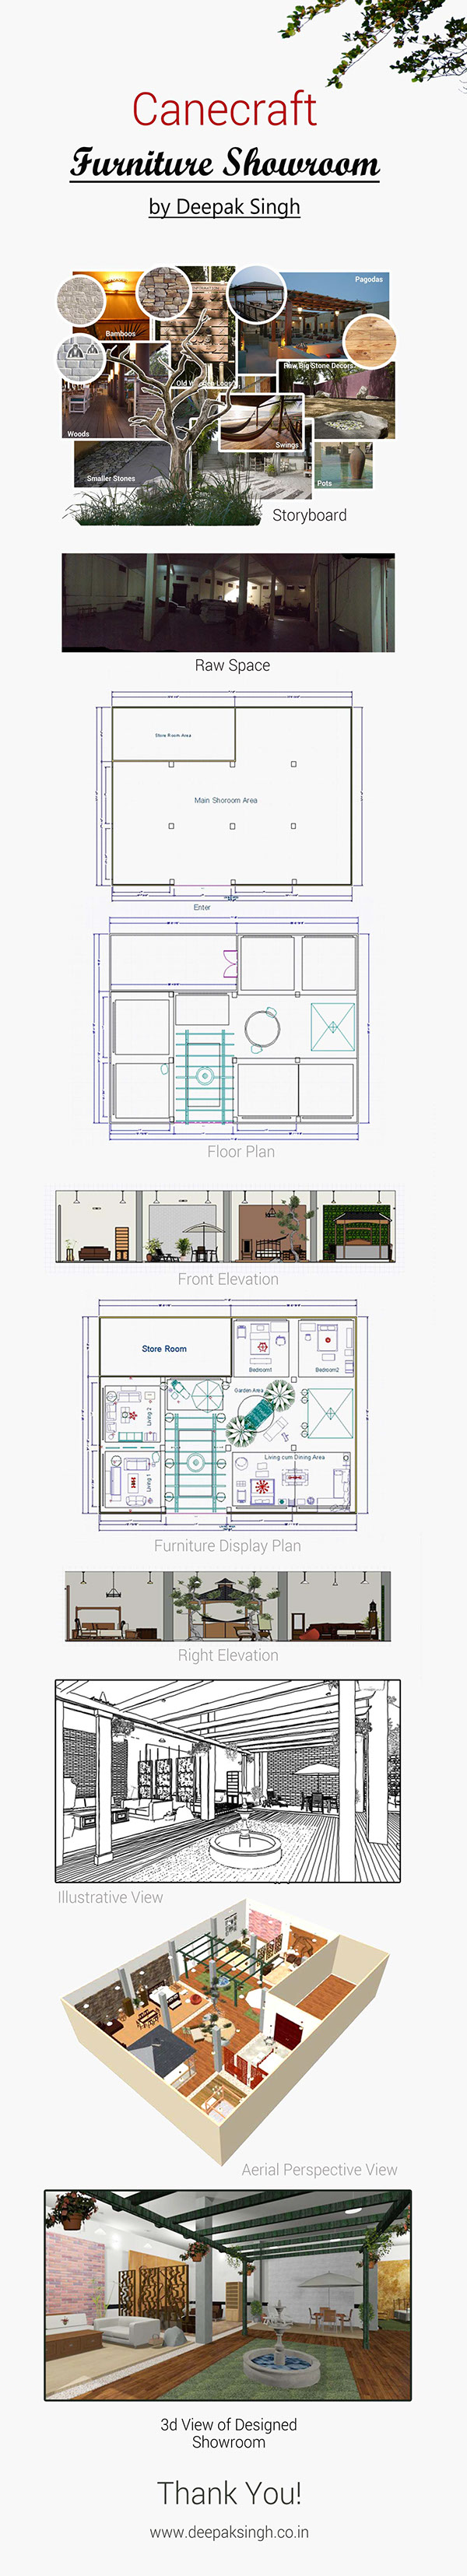 Showroom Interior Design By Deepak Singh On Wacom Gallery